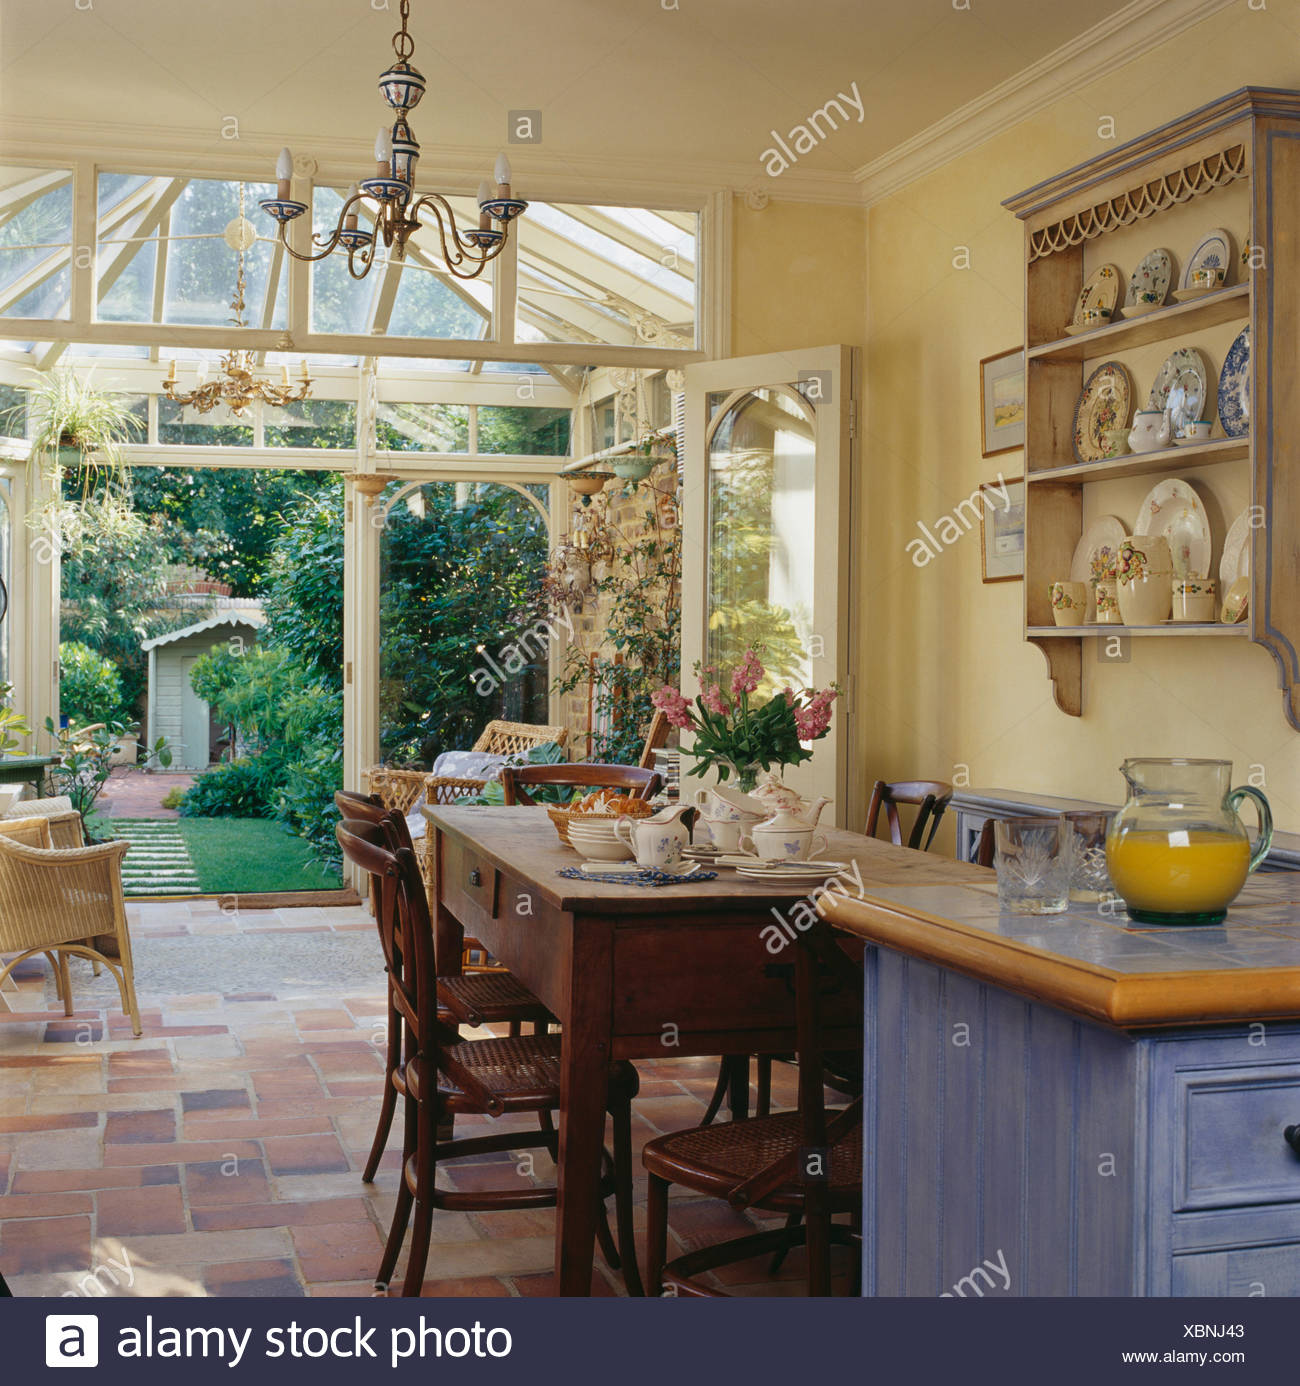 Simple Wooden Table And Chairs In Country Kitchen Dining Room With Conservatory Extension Doors Open